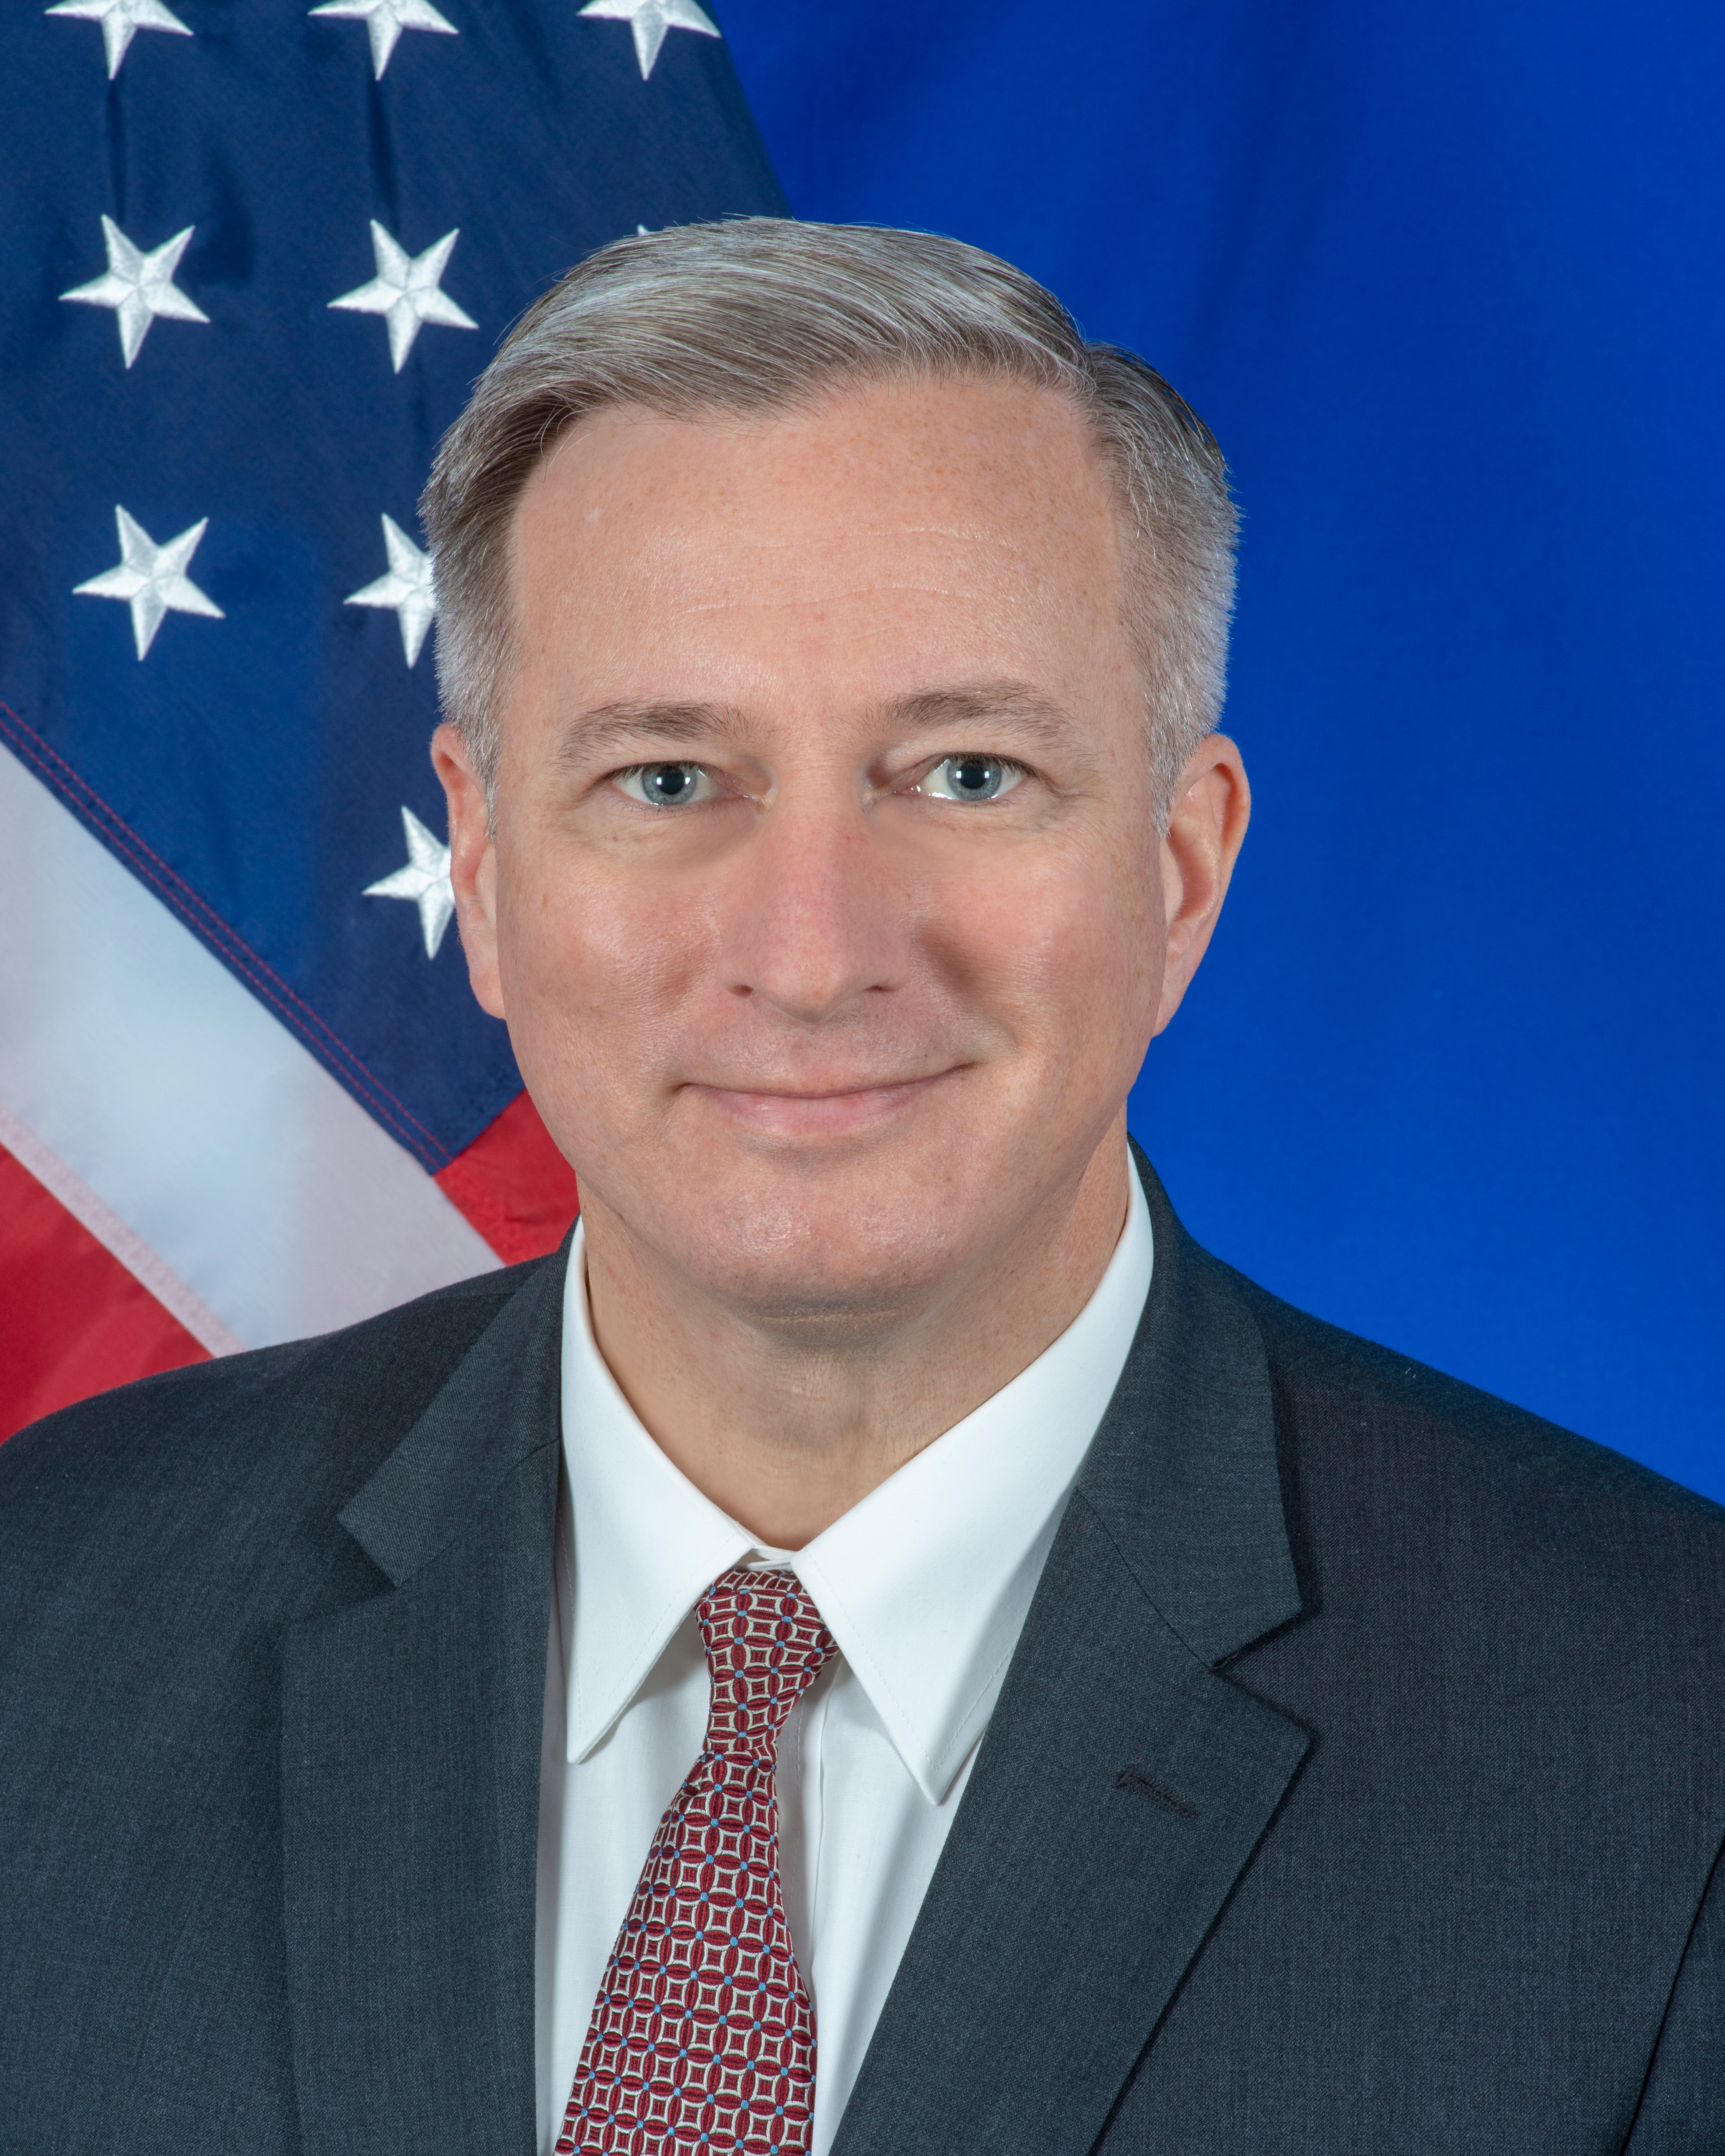 John Cotton Richmond, Ambassador-at-Large, Office to Monitor and Combat Trafficking in Persons